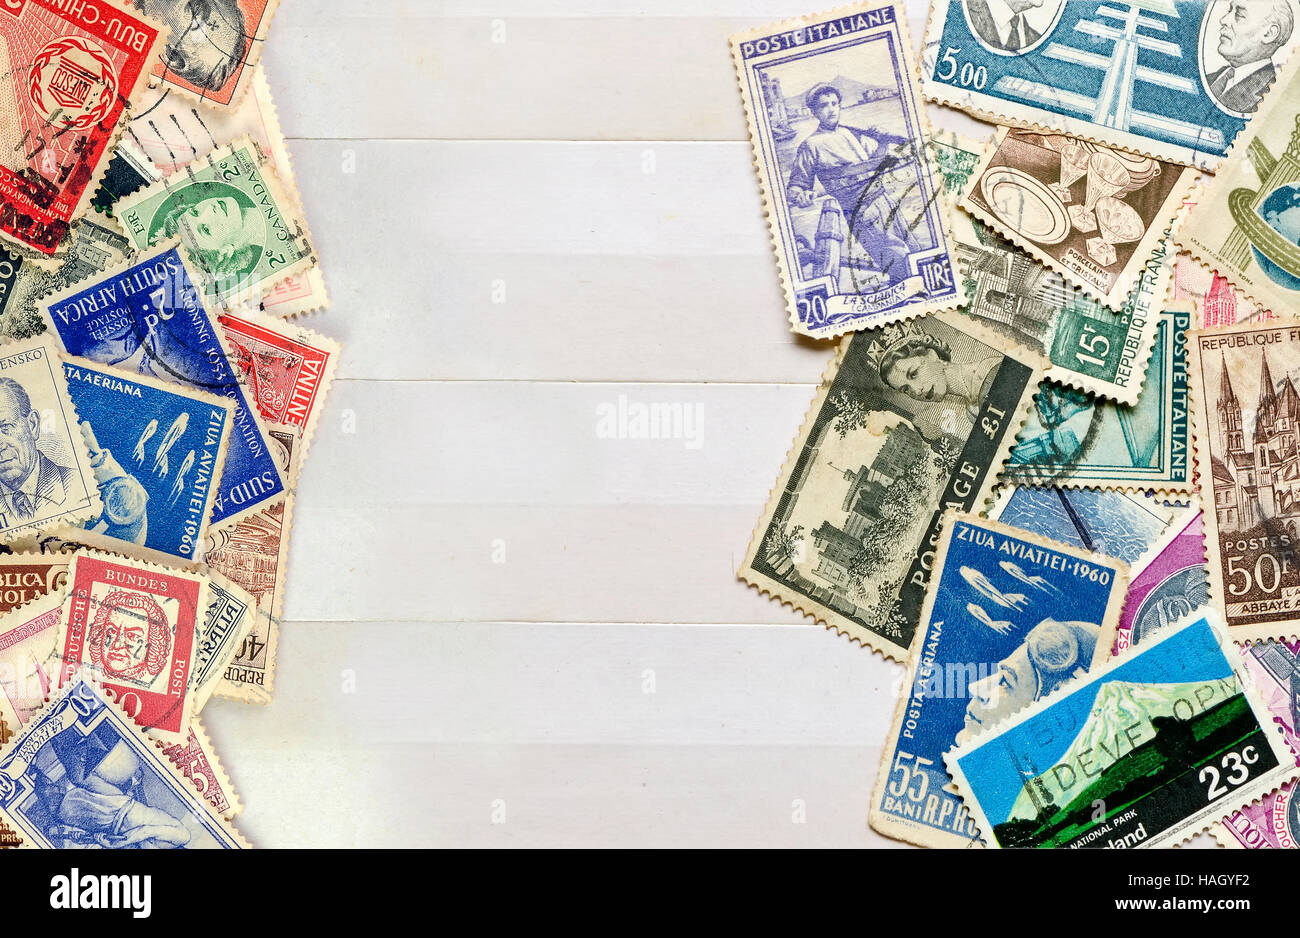 Used stamps mail of  different countries on the book collecting stamps page. - Stock Image